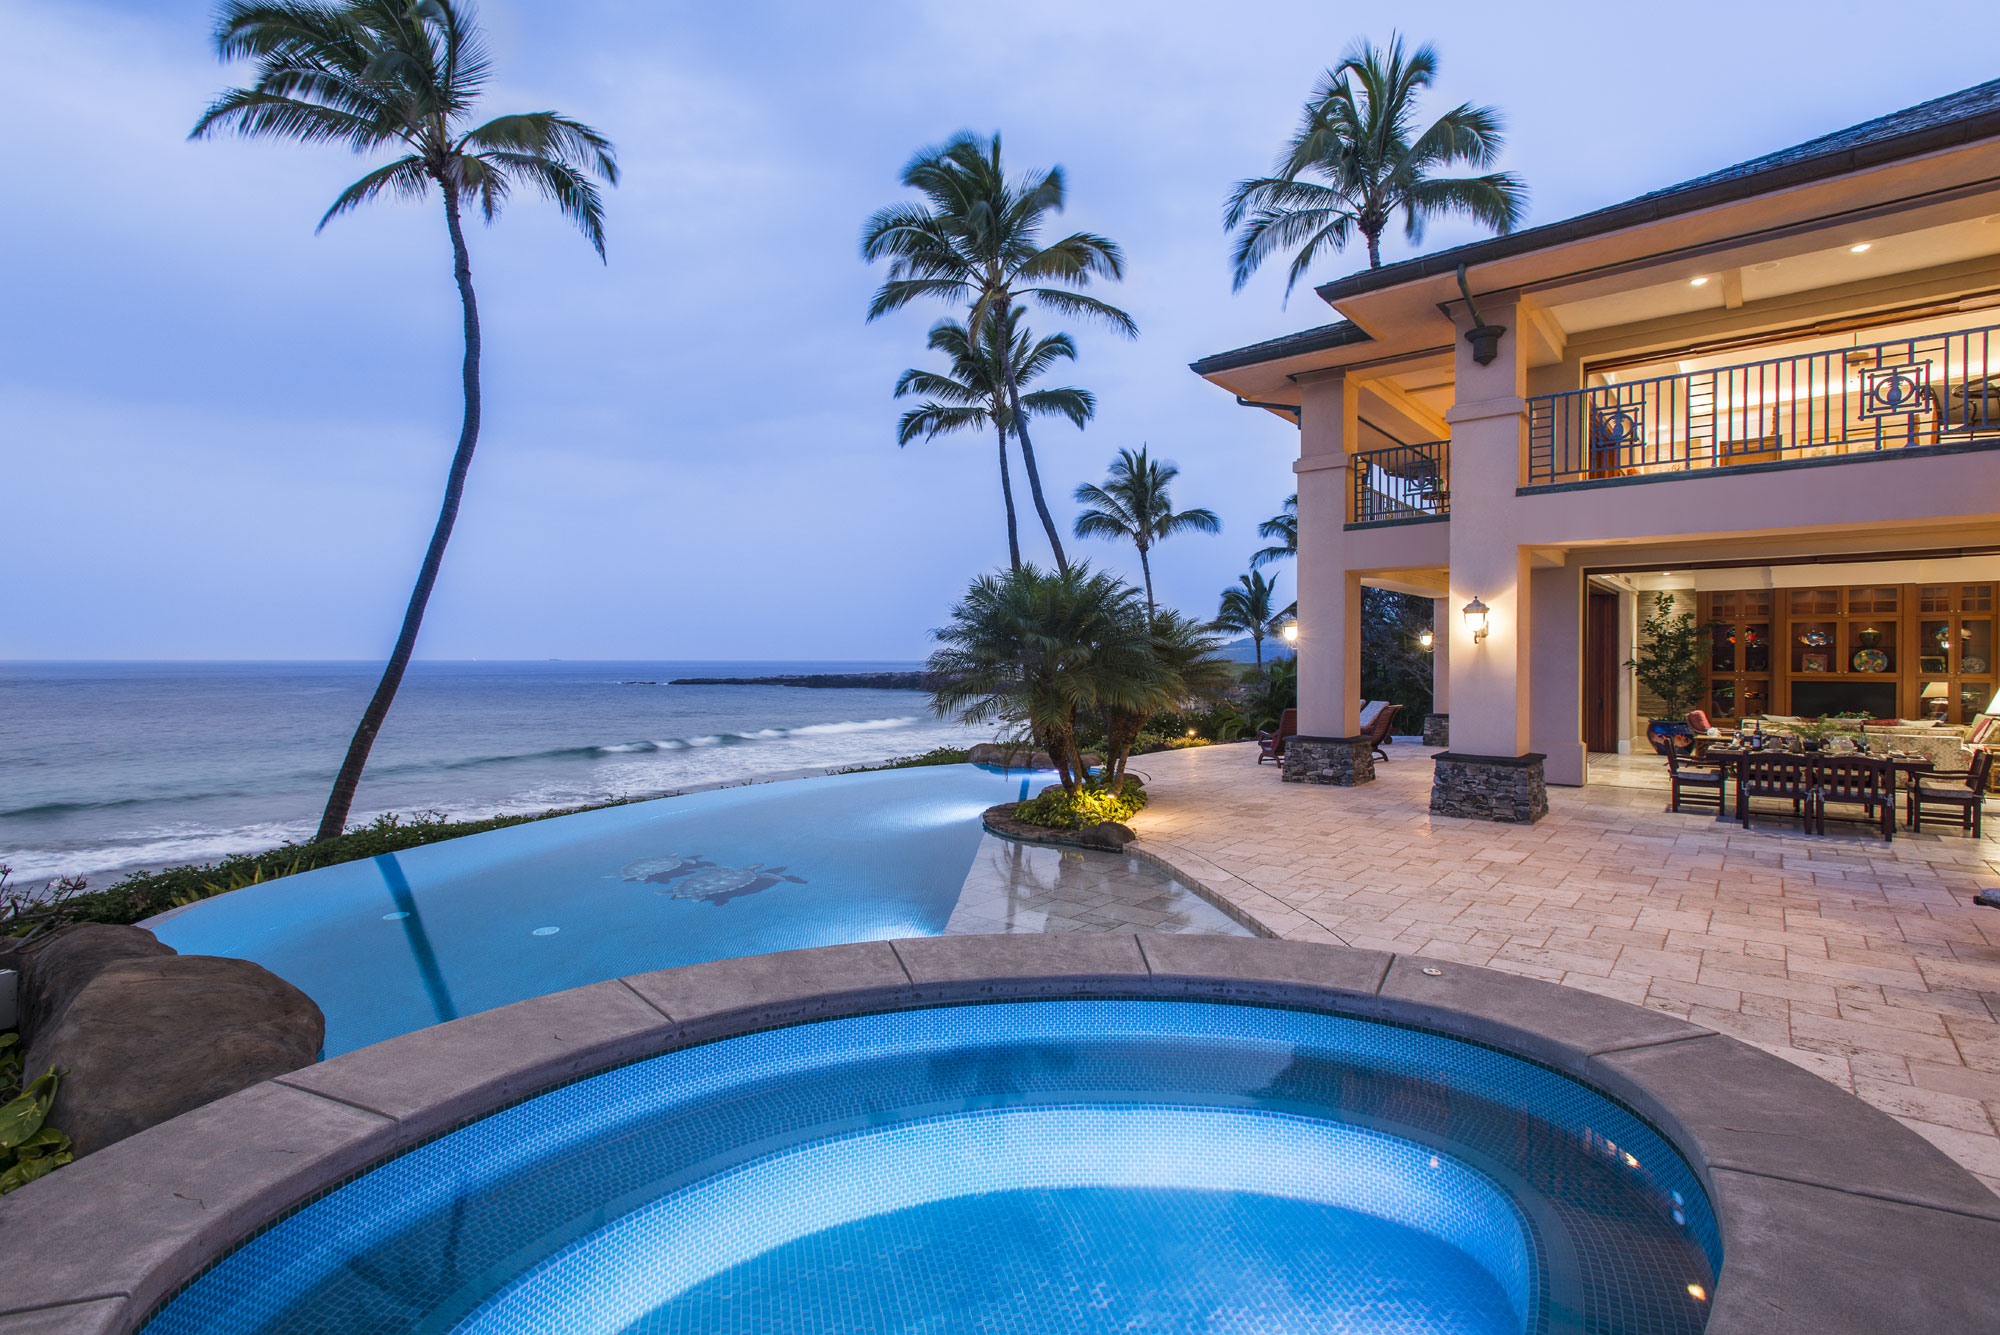 Hale Ali'i, one of only five beachfront estates on Oneloa Bay, the most pristine and enchanting beach in Kapalua, Maui, offers 7,475 square feet of luxurious living areas and lanais with unrivaled views of the Pacific Ocean and the island of Molokai.